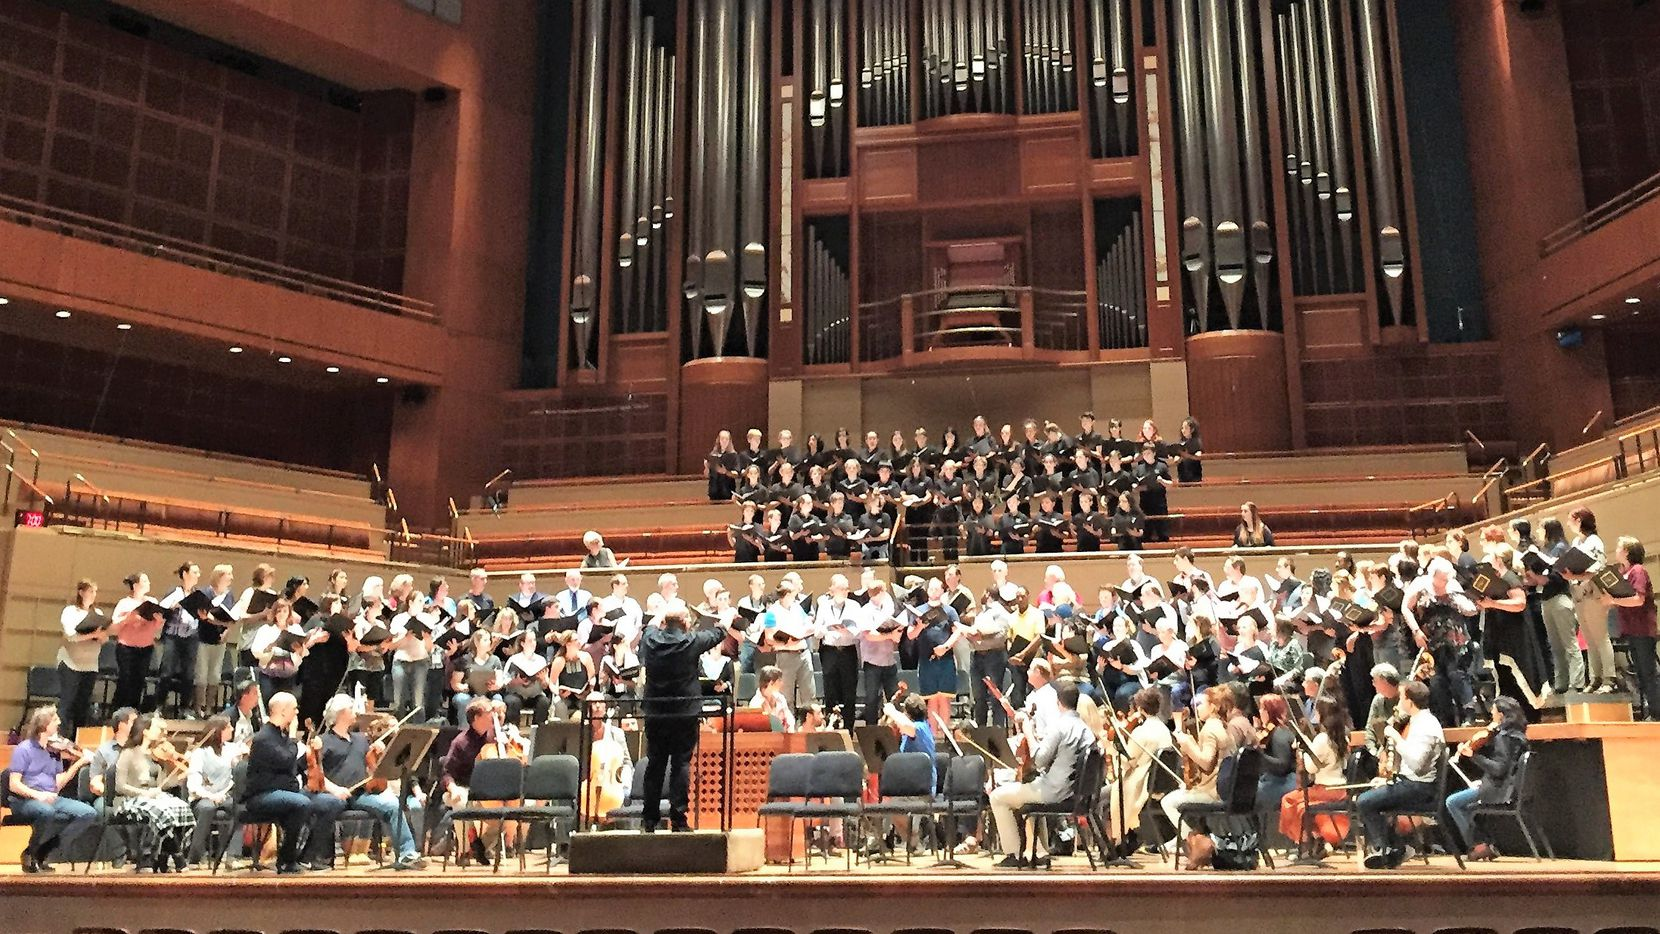 Jaap van Zweden rehearsed recently with the Dallas Symphony Orchestra, Dallas Symphony Chorus and Children's Chorus of Greater Dallas on The Passion According to St. Matthew, The Passion According to St. John at Meyerson Symphony Center in Dallas.